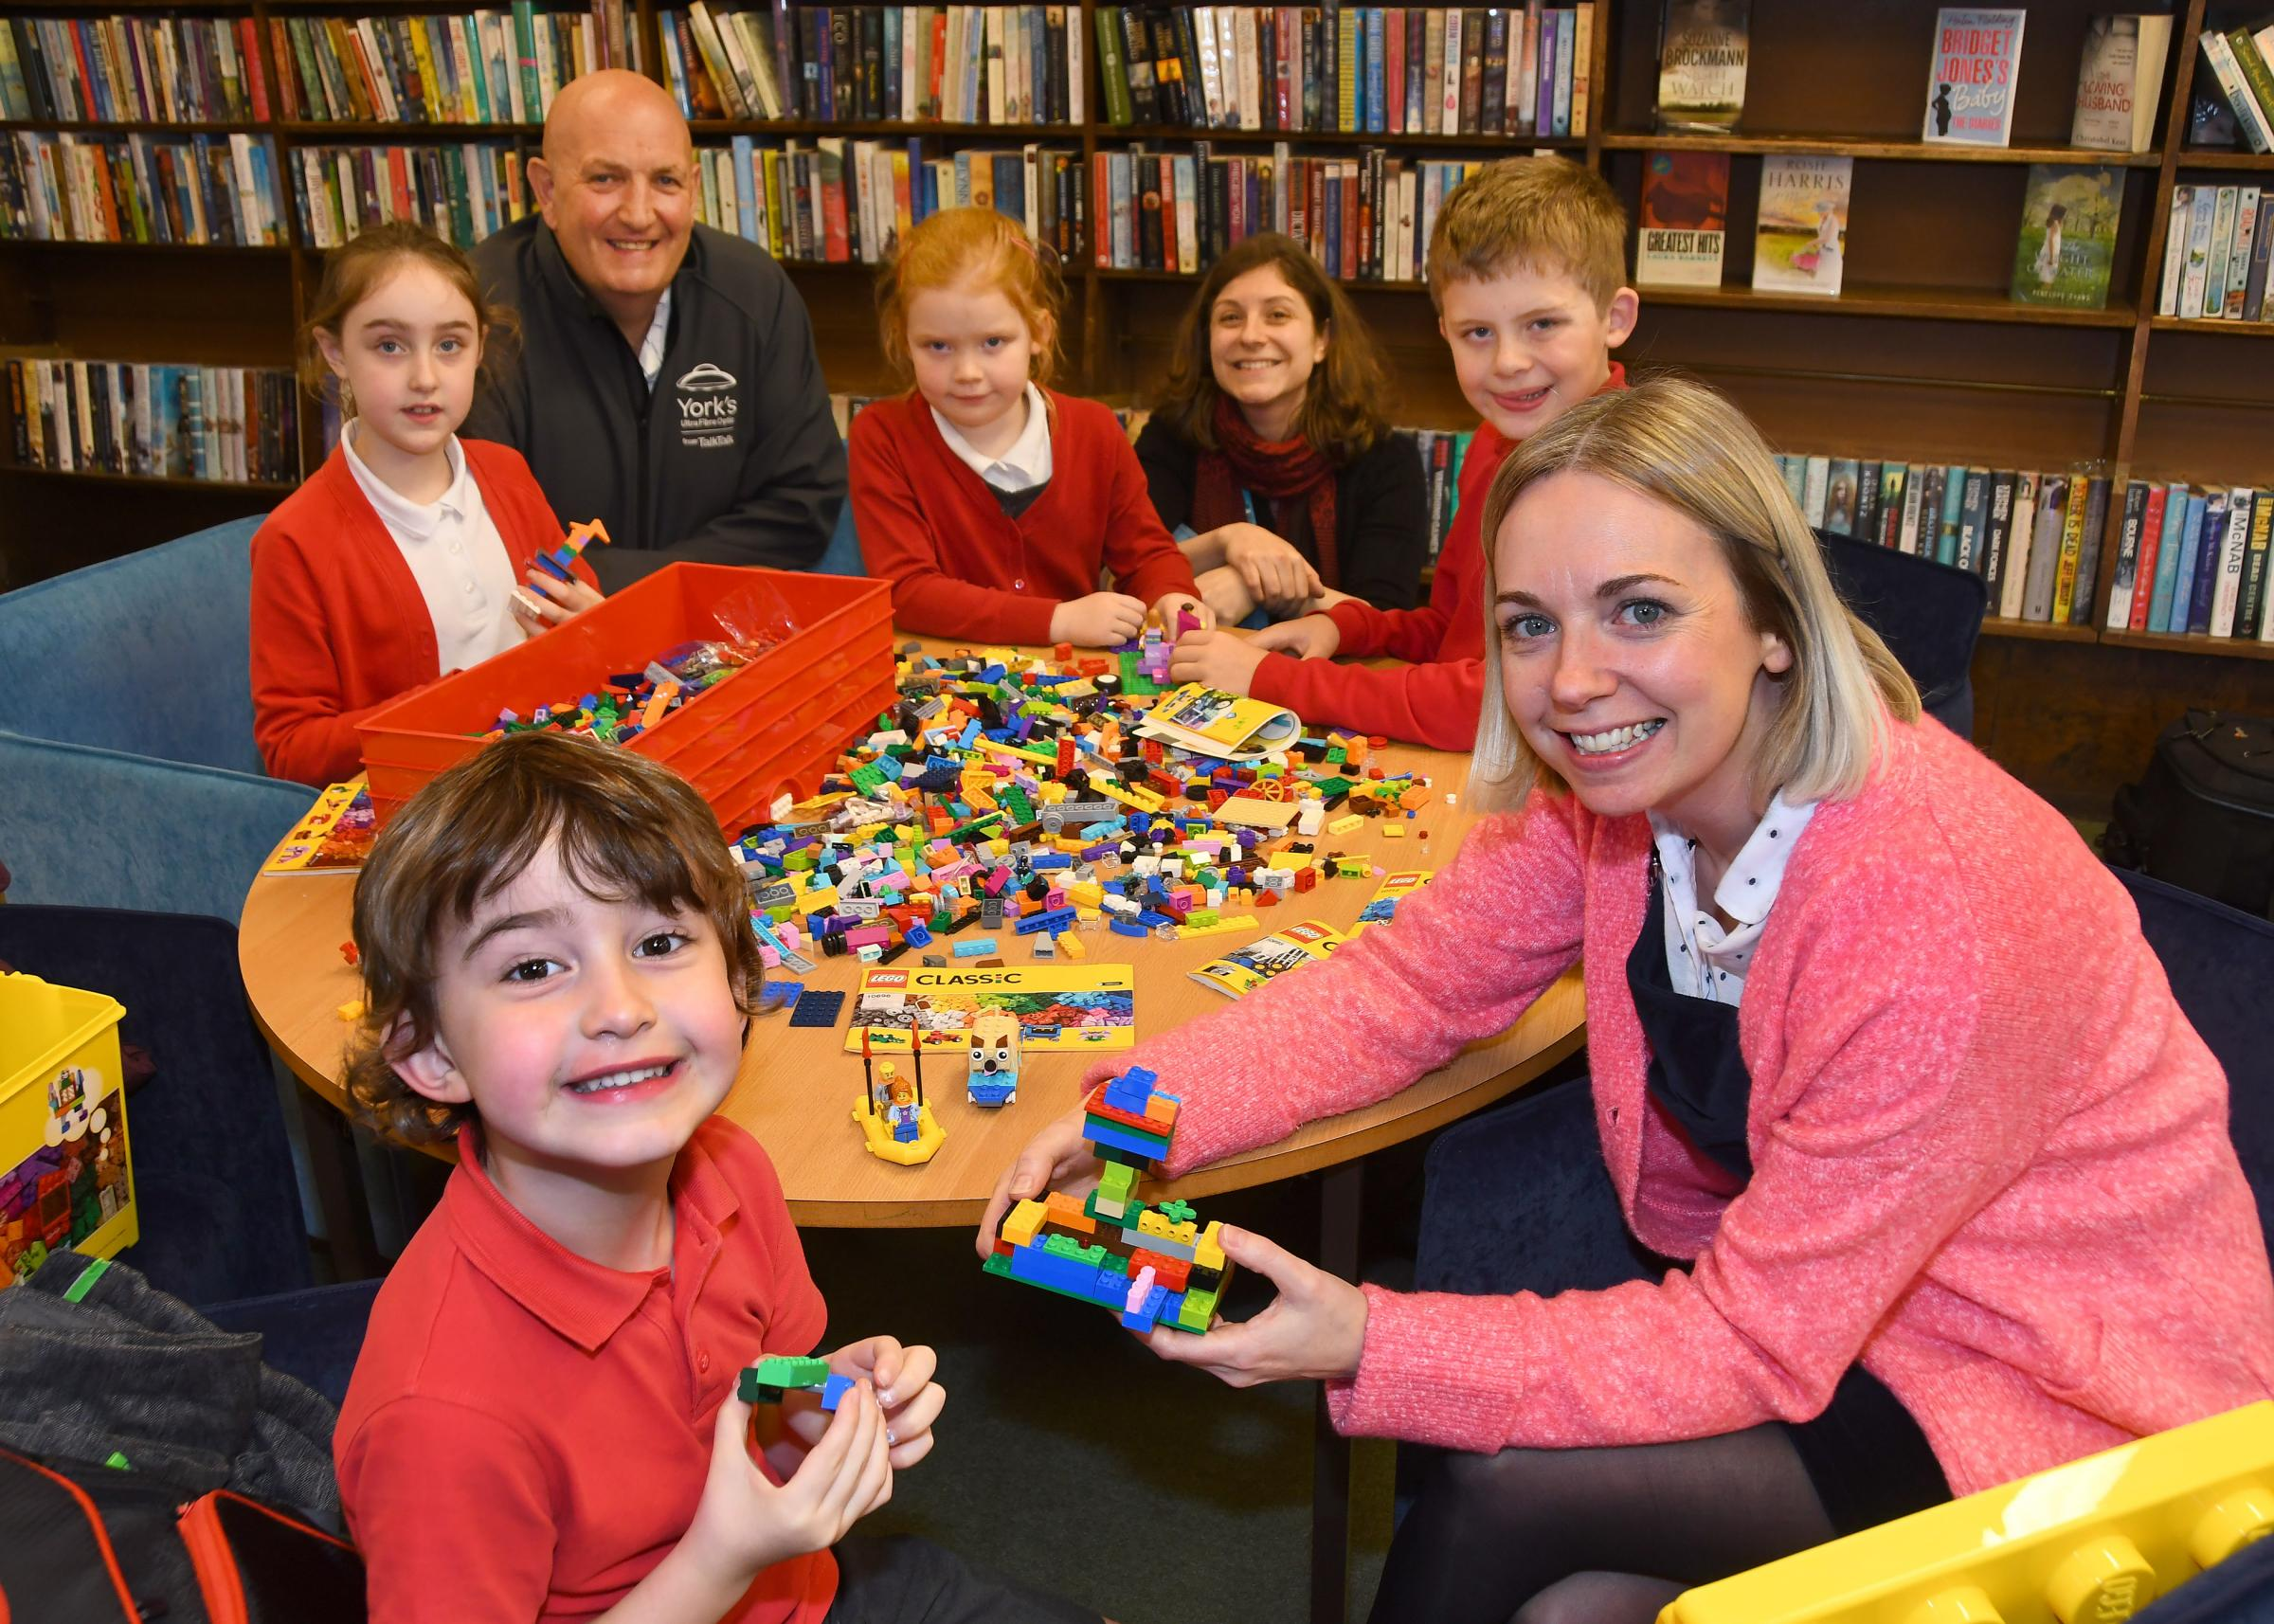 Pictured enjoying the Lego at Dringhouses library are front left Evan with Helen Fletcher from Talk Talk. Back from the left are Elsa, Steve Craven from TalkTalk, Amelie, Lucy Pell-Walpole, library gateway manager for York Explore Libraries, and Sam. Pict